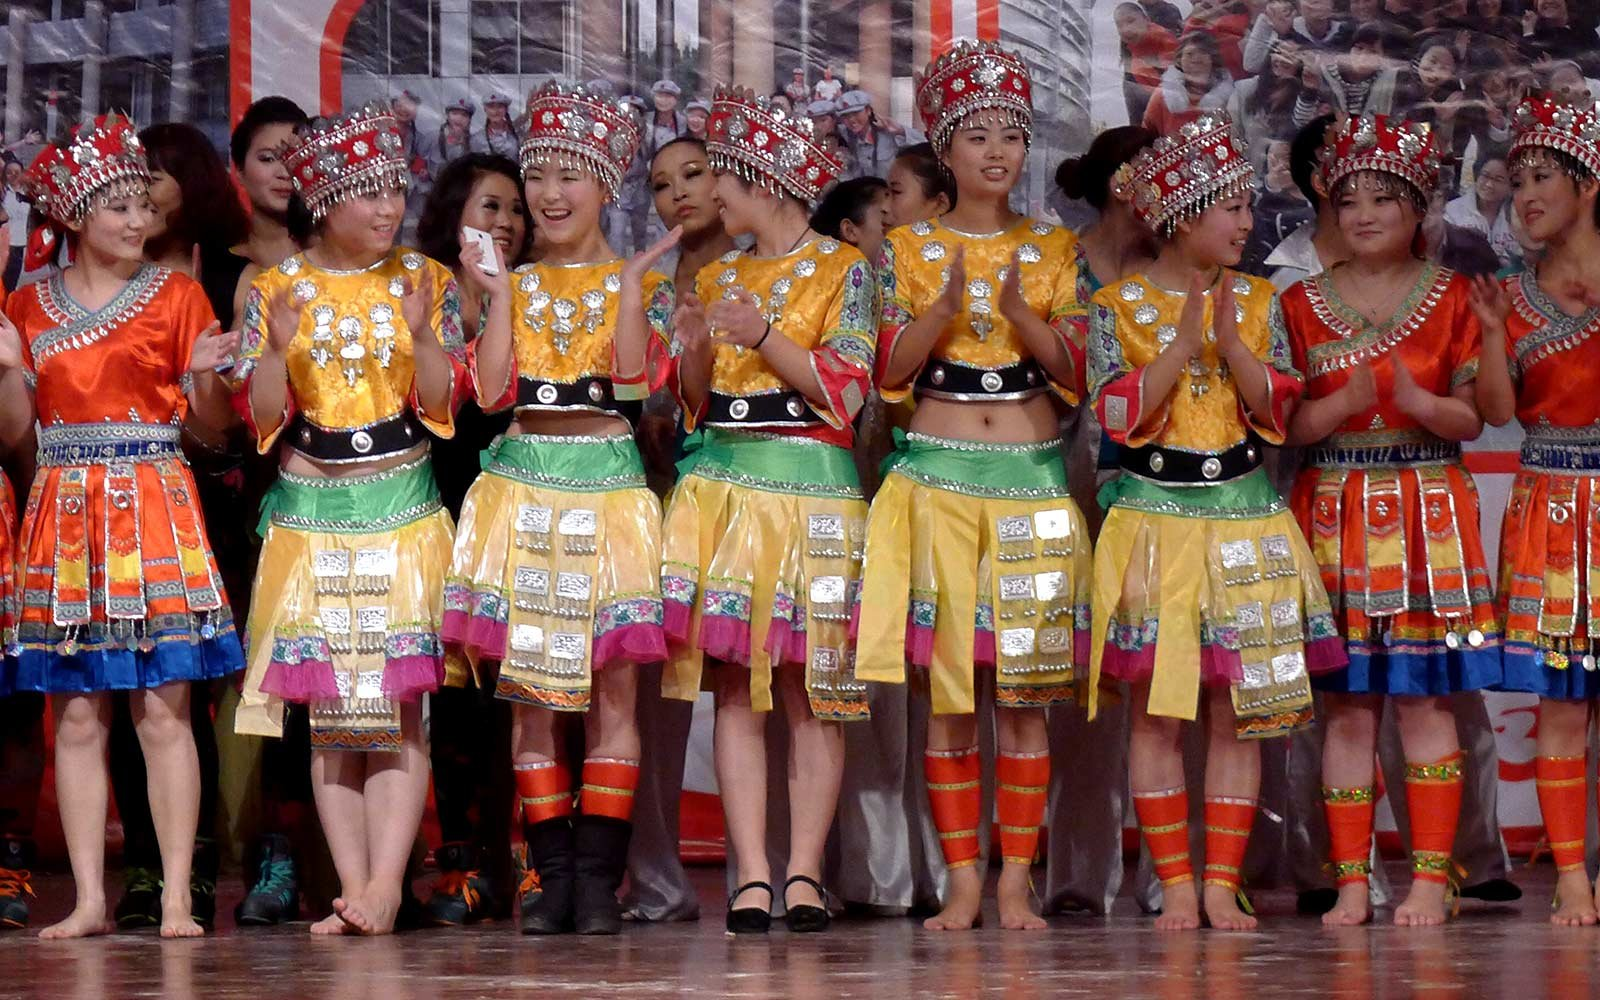 The Dongzhi Festival in China